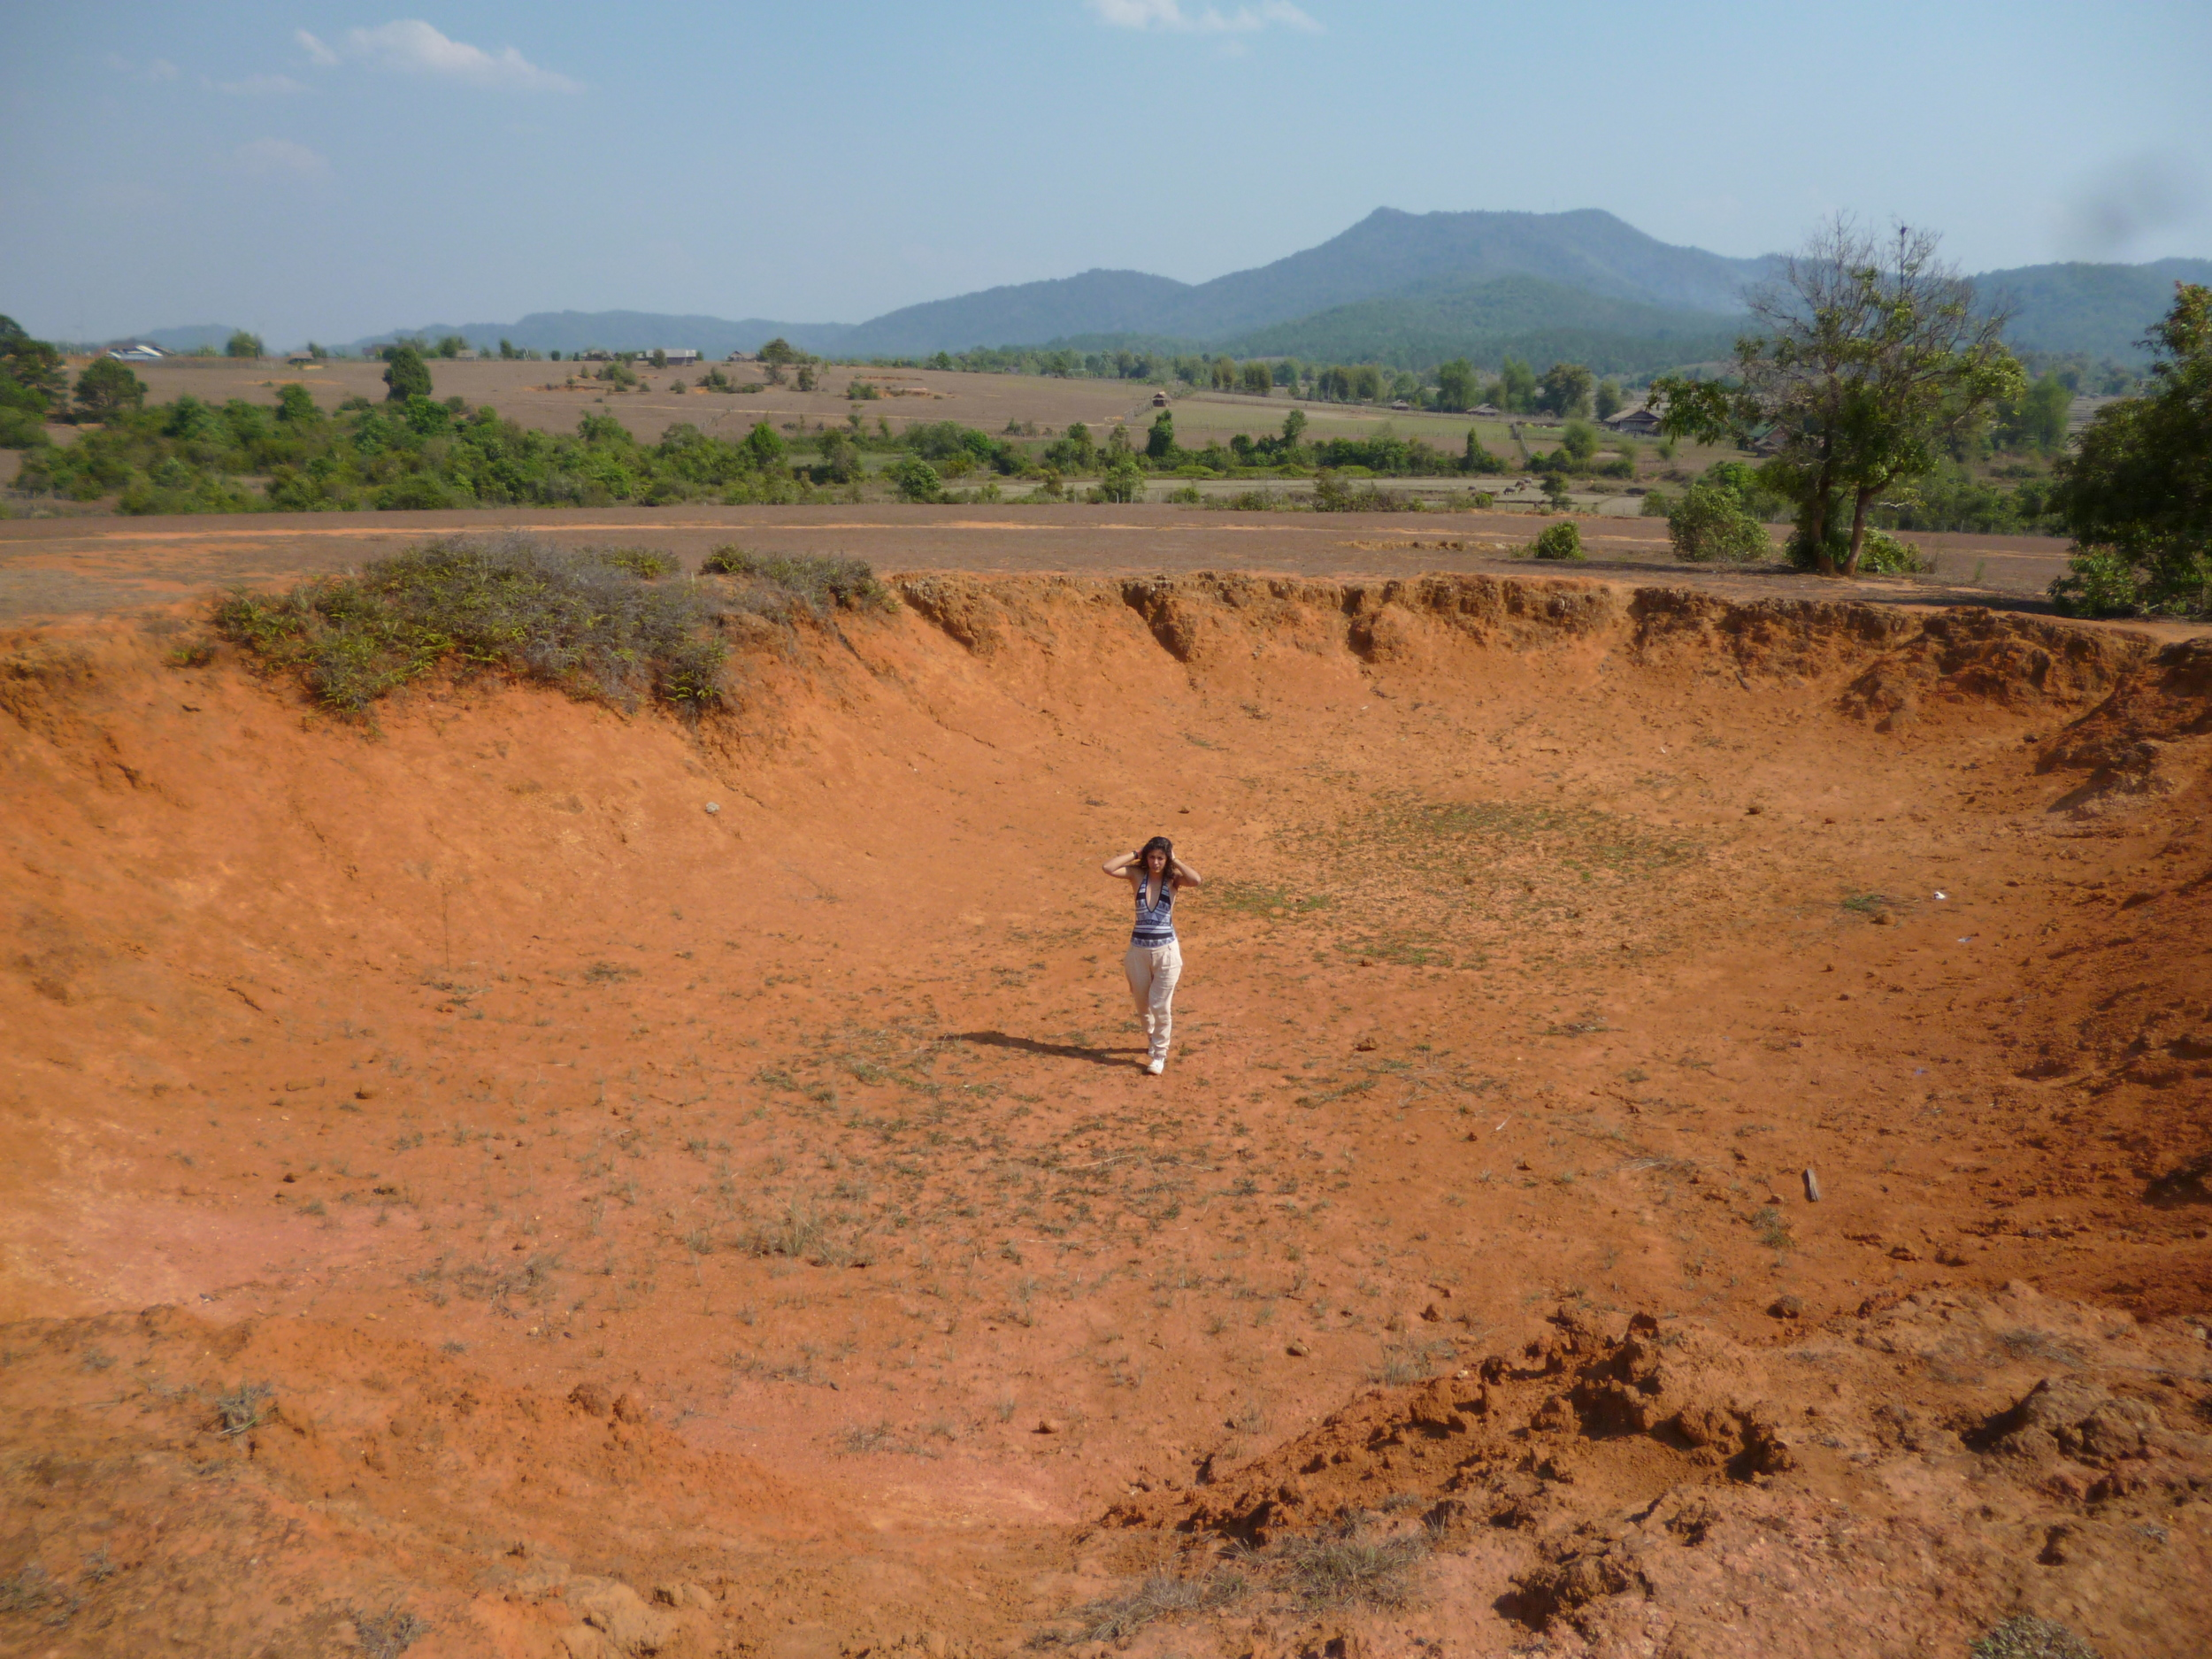 Dilara exploring a bomb crater she found near the Plain of Jars, Laos